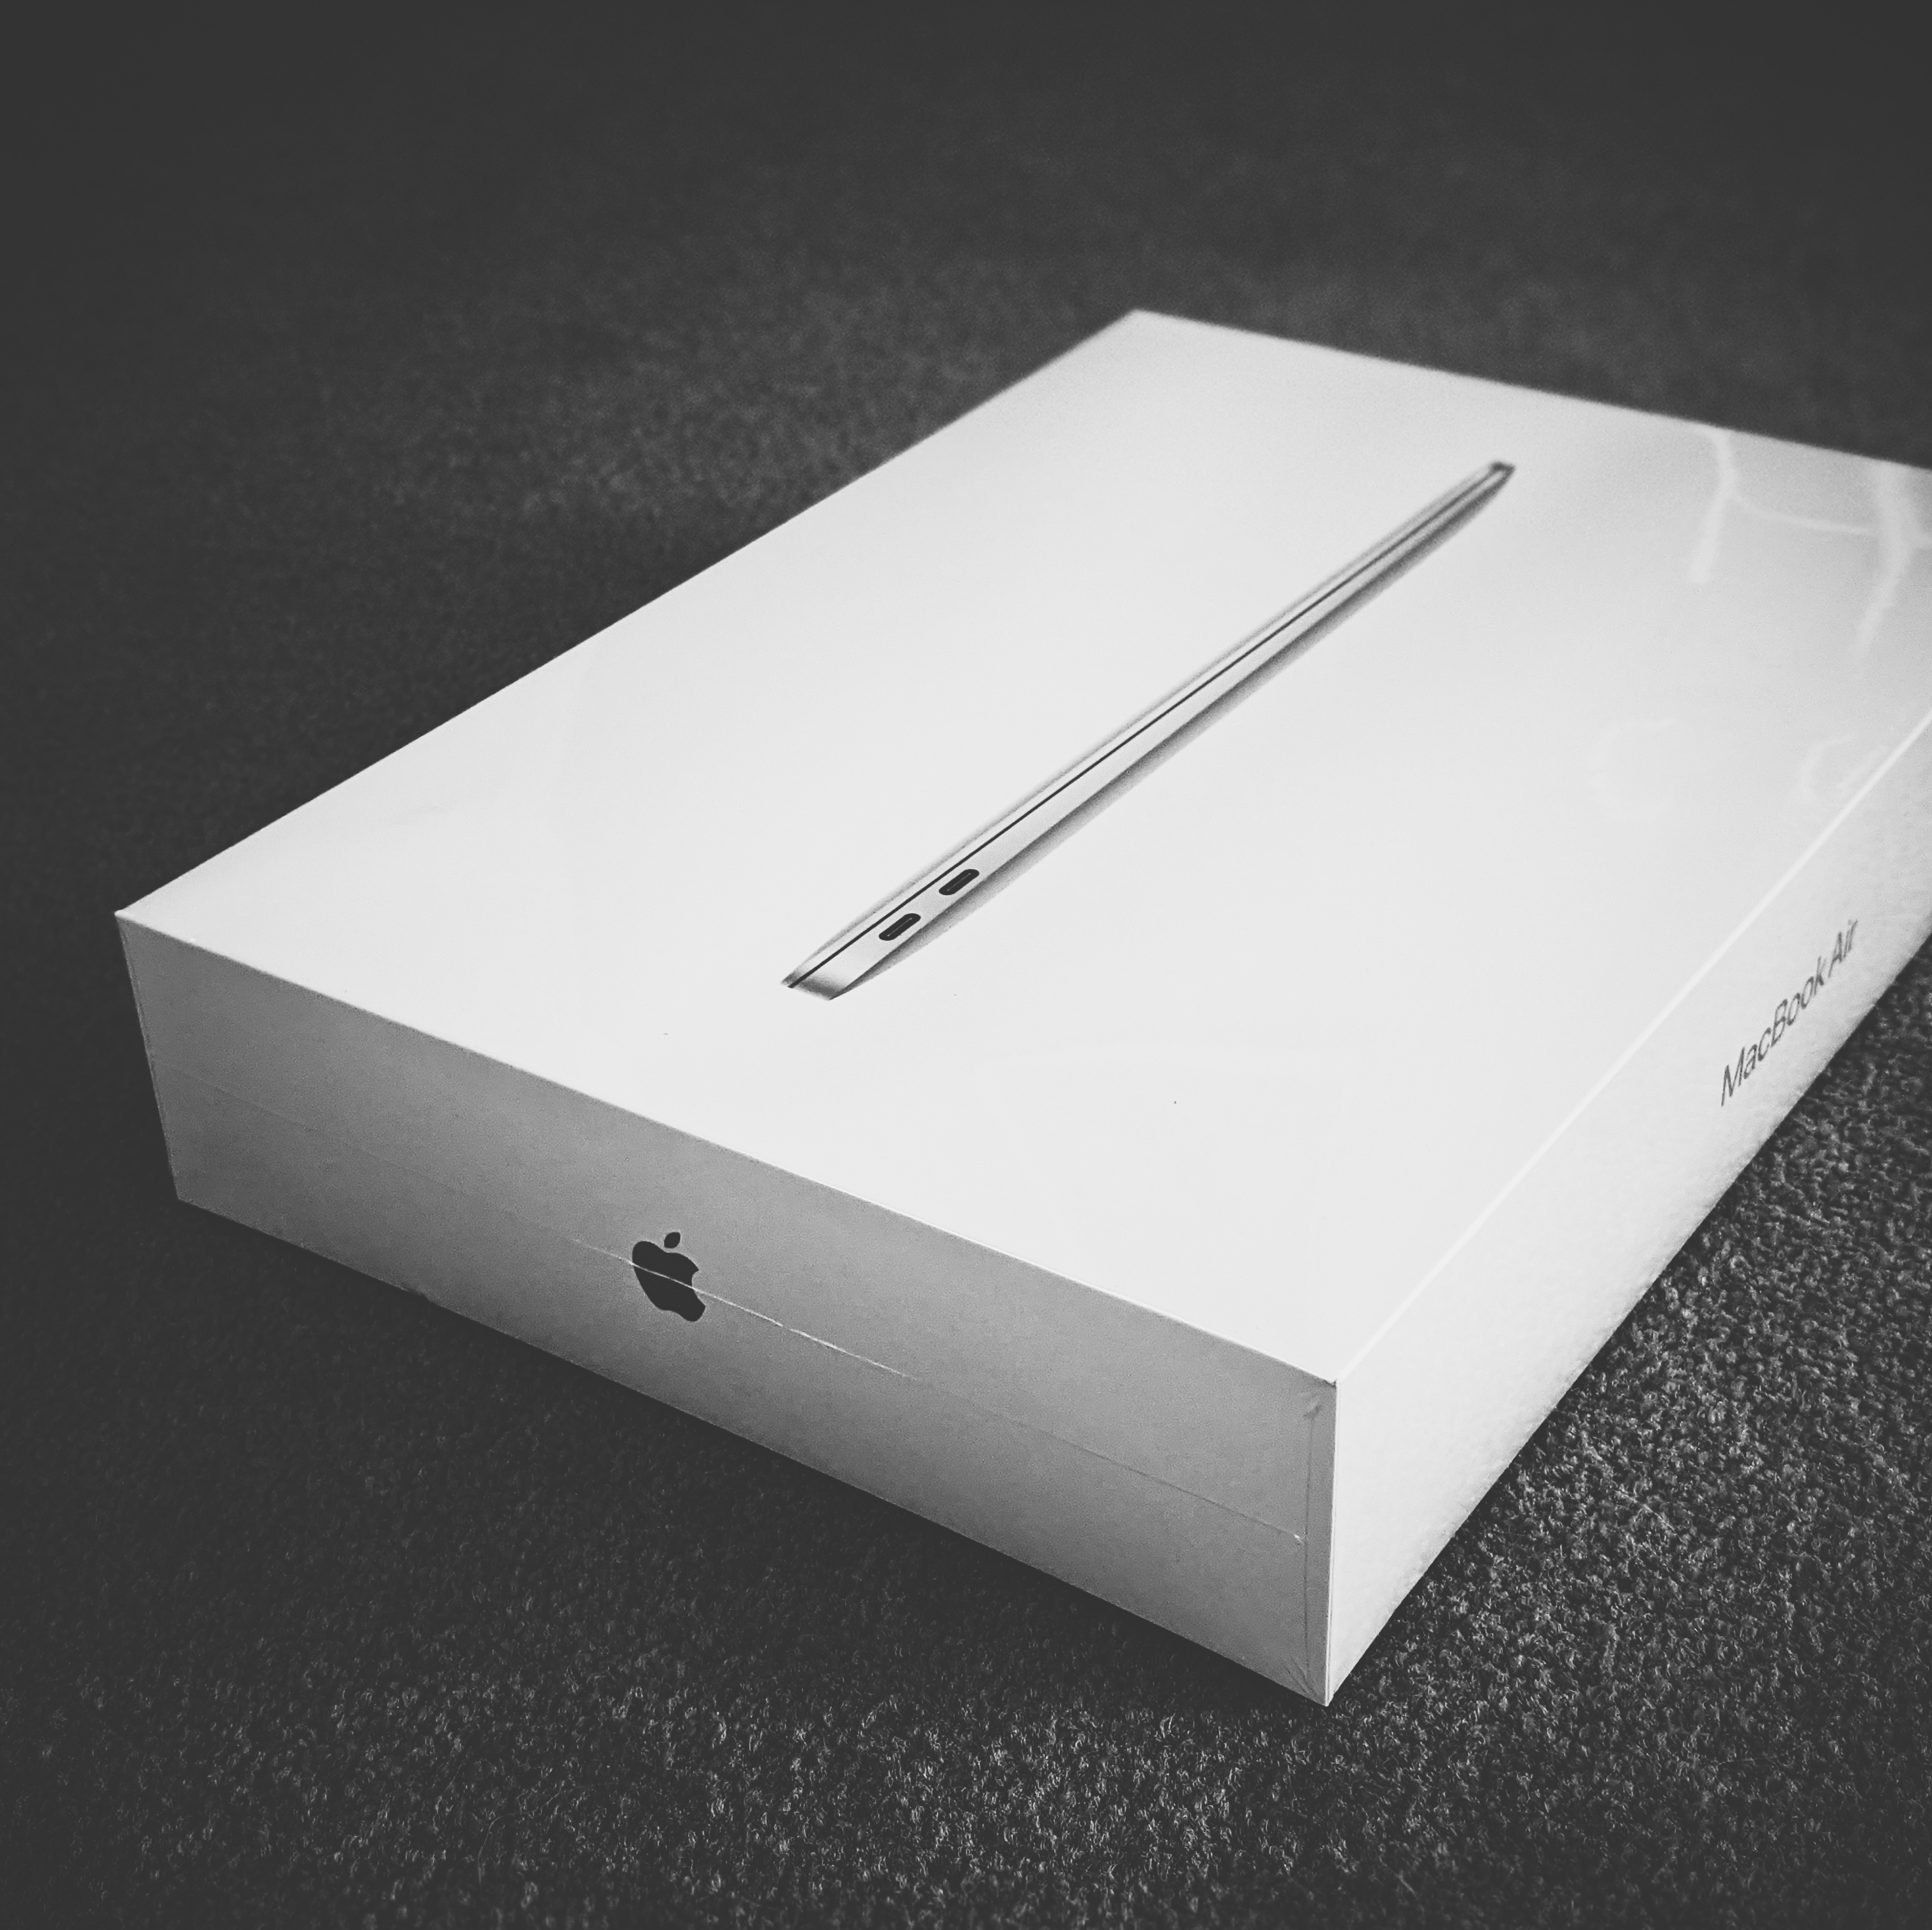 Unopened M1 MacBook Air box